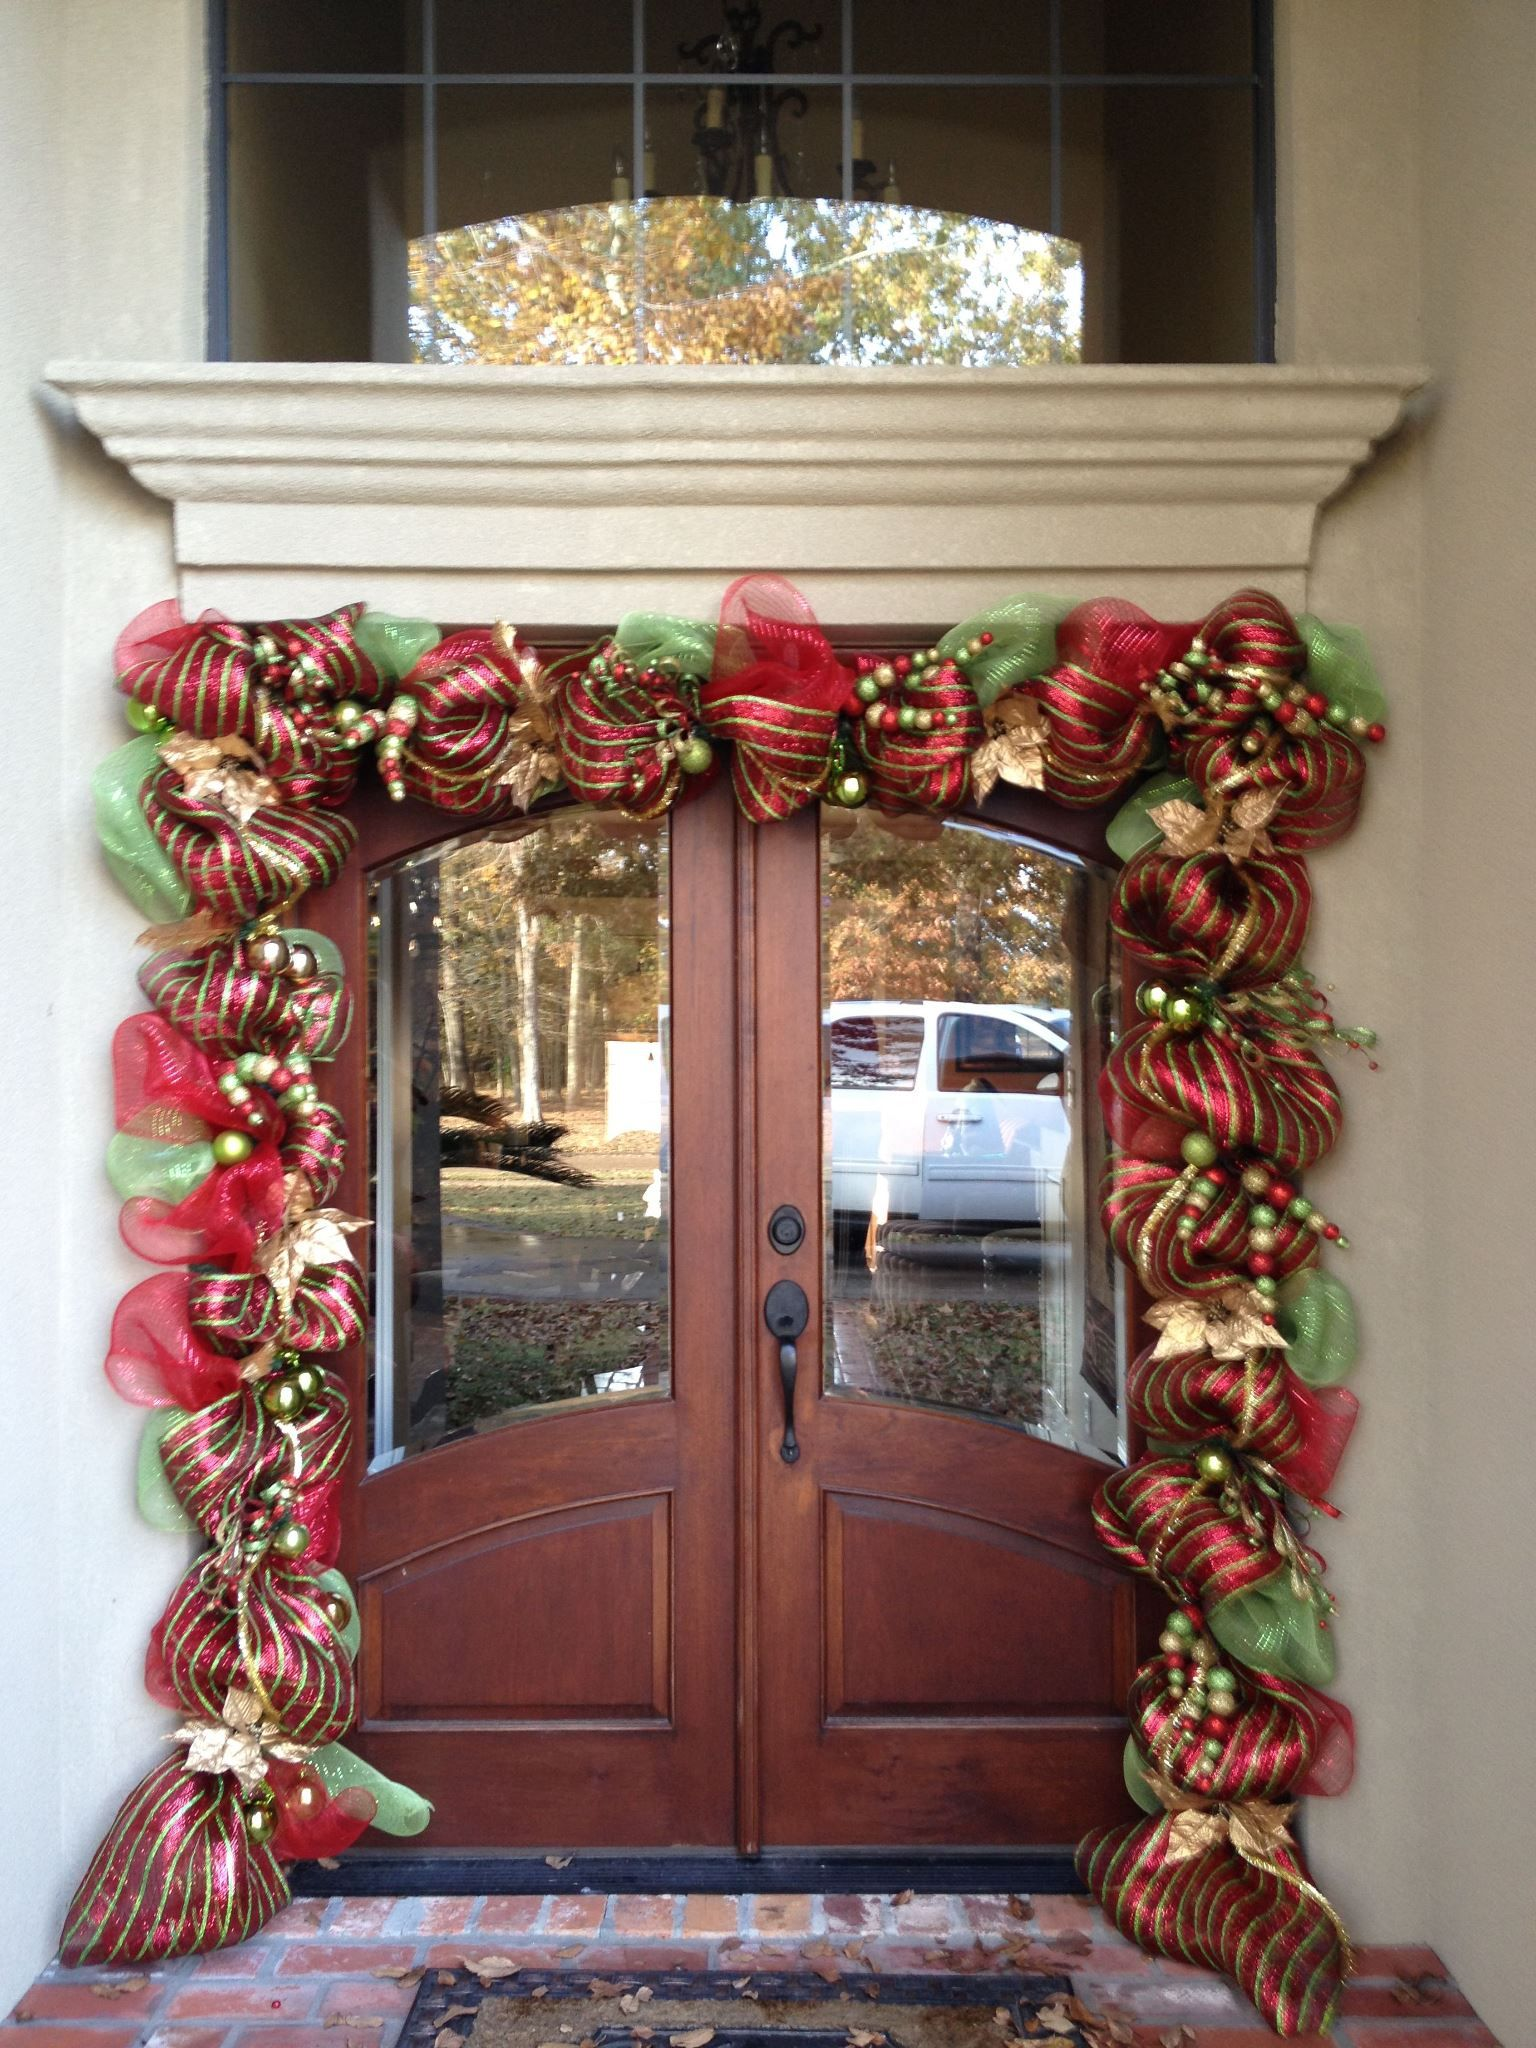 Christmas door garland | Christmas Ideas | Pinterest ...